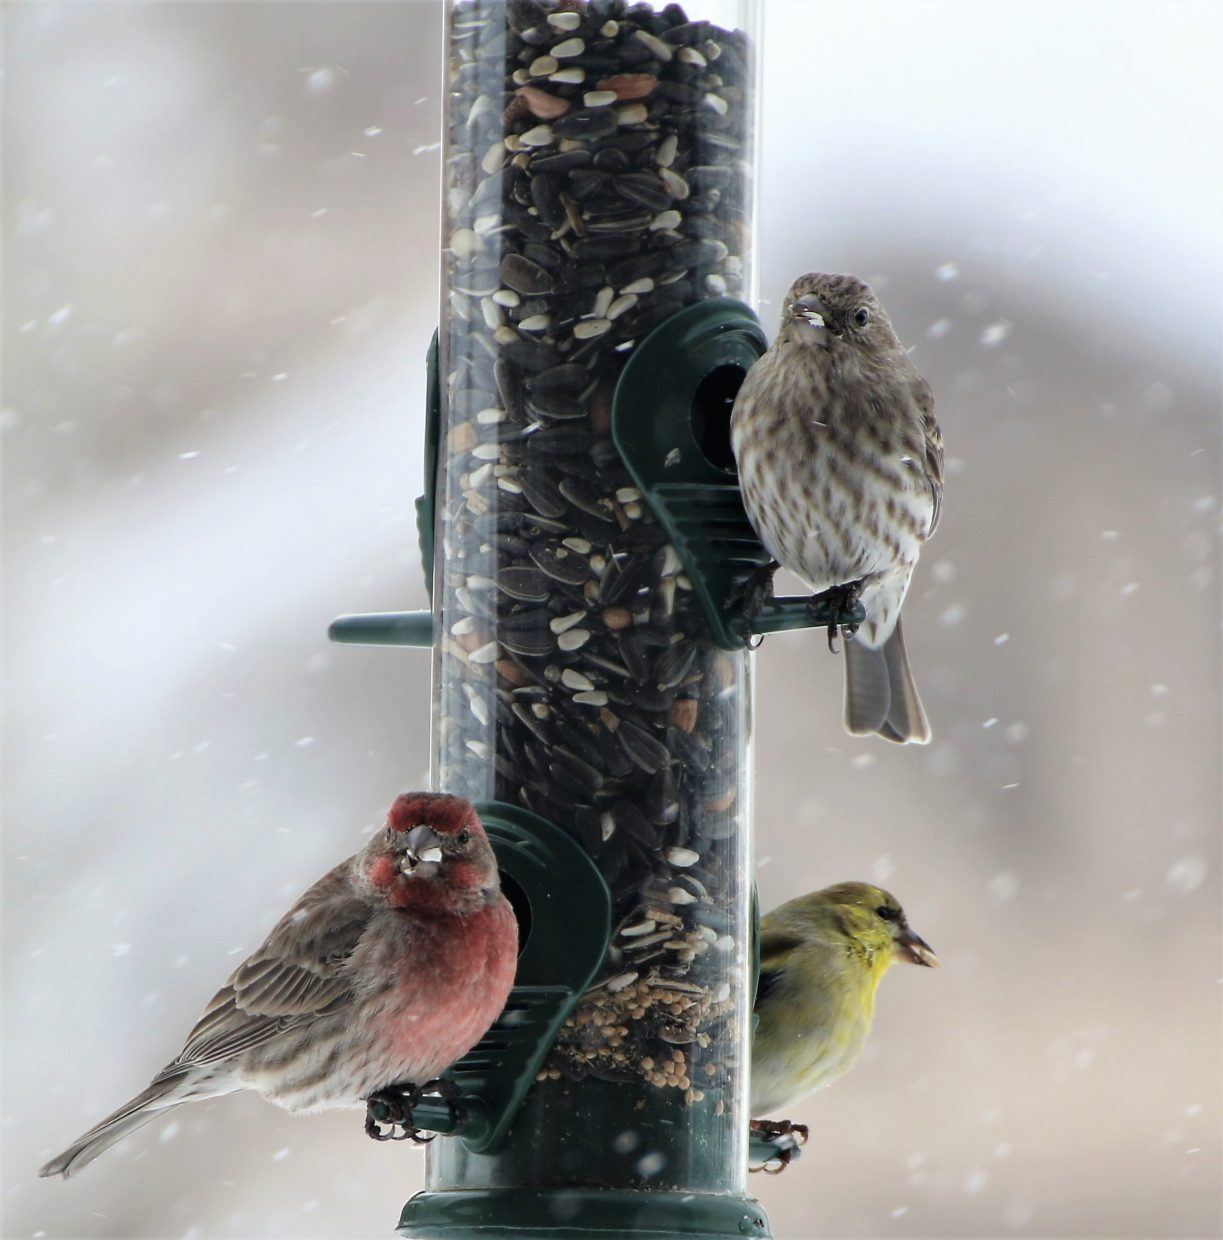 Multi-colored finches visit a bird feeder as it snows.